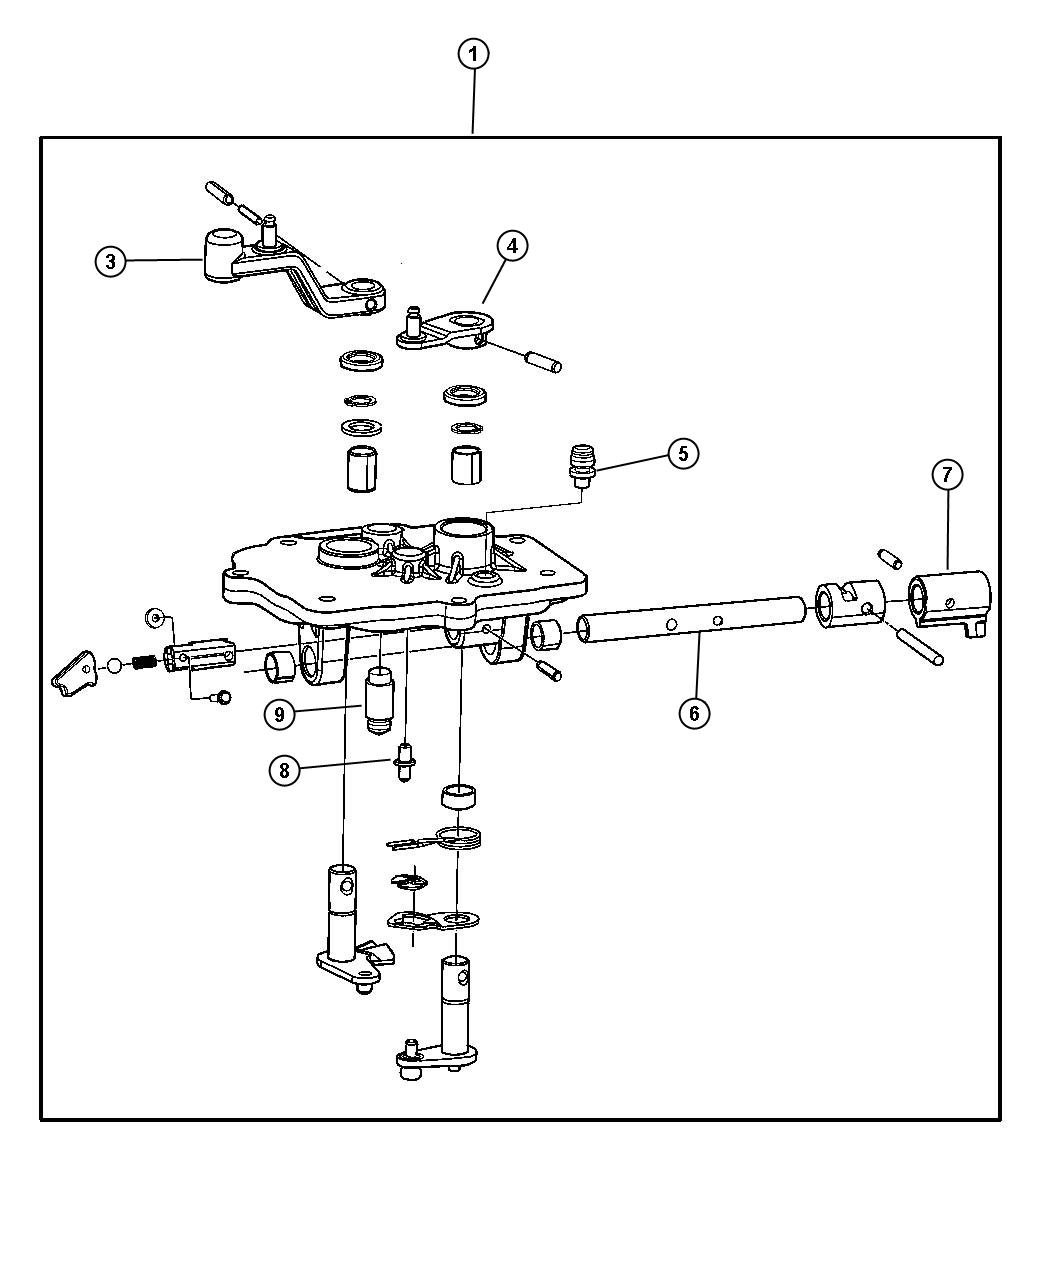 95 ford contour fuel filter location